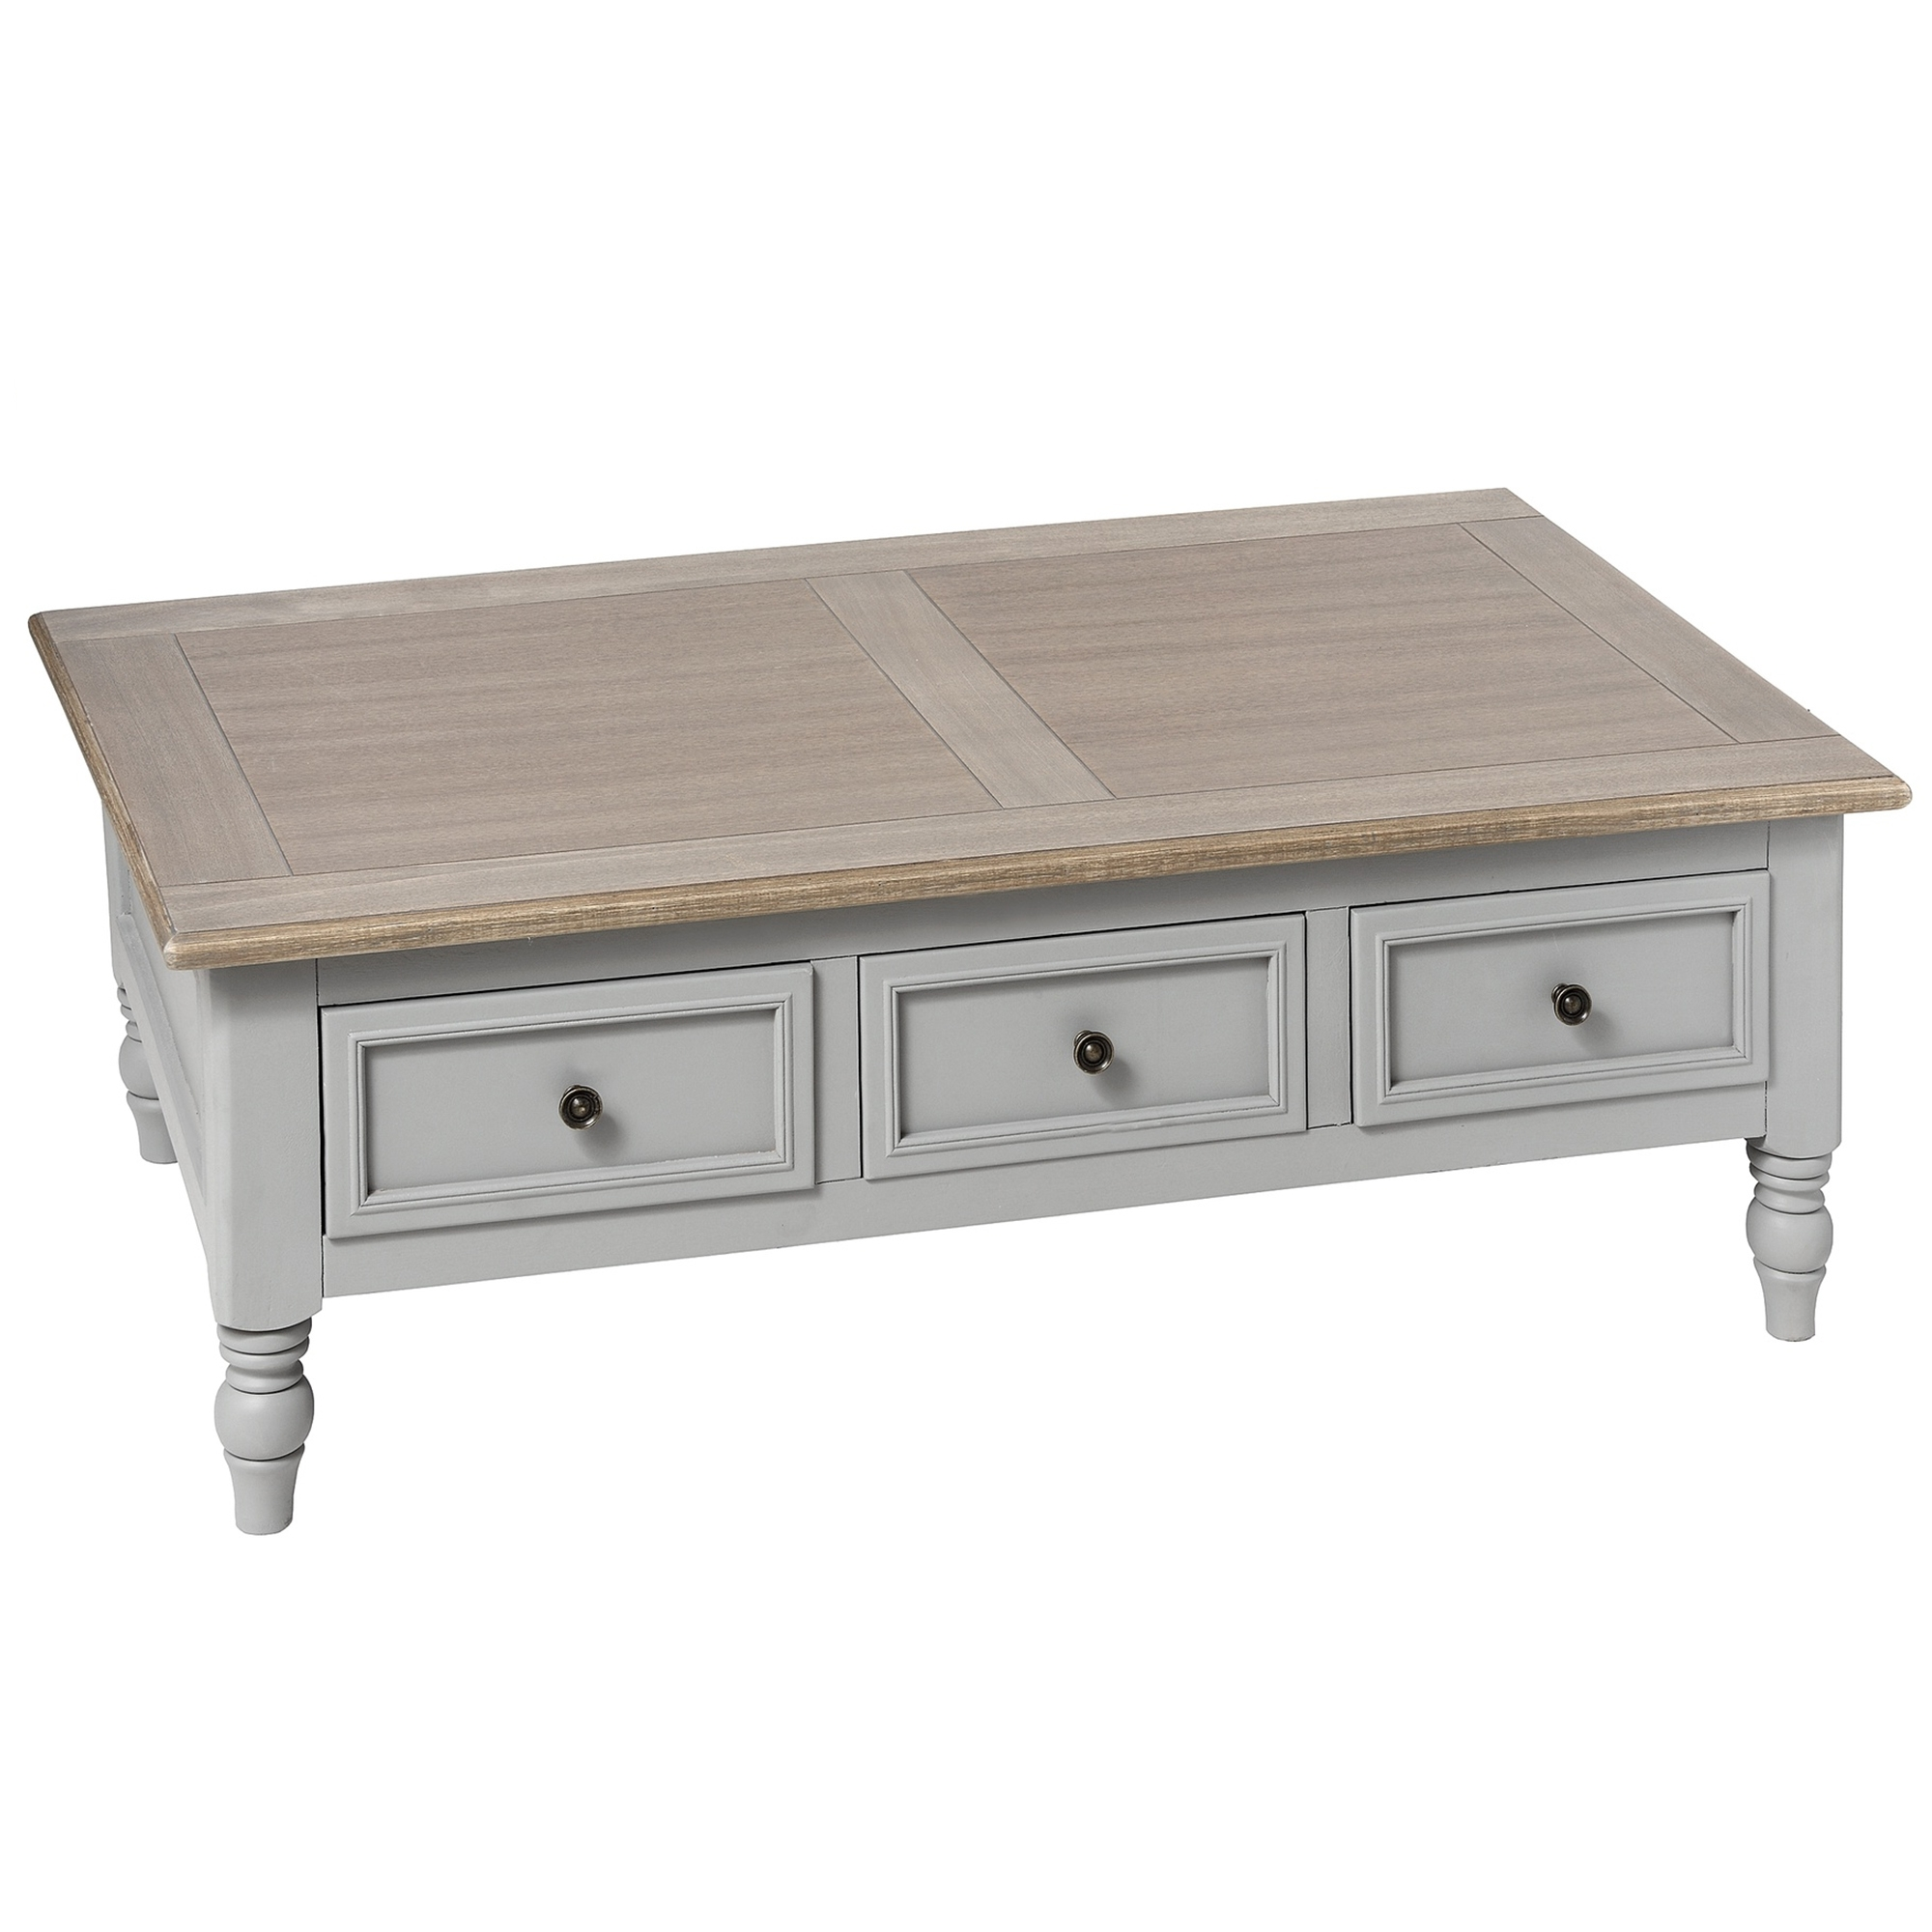 Churchill Shabby Chic Coffee Table Available Now